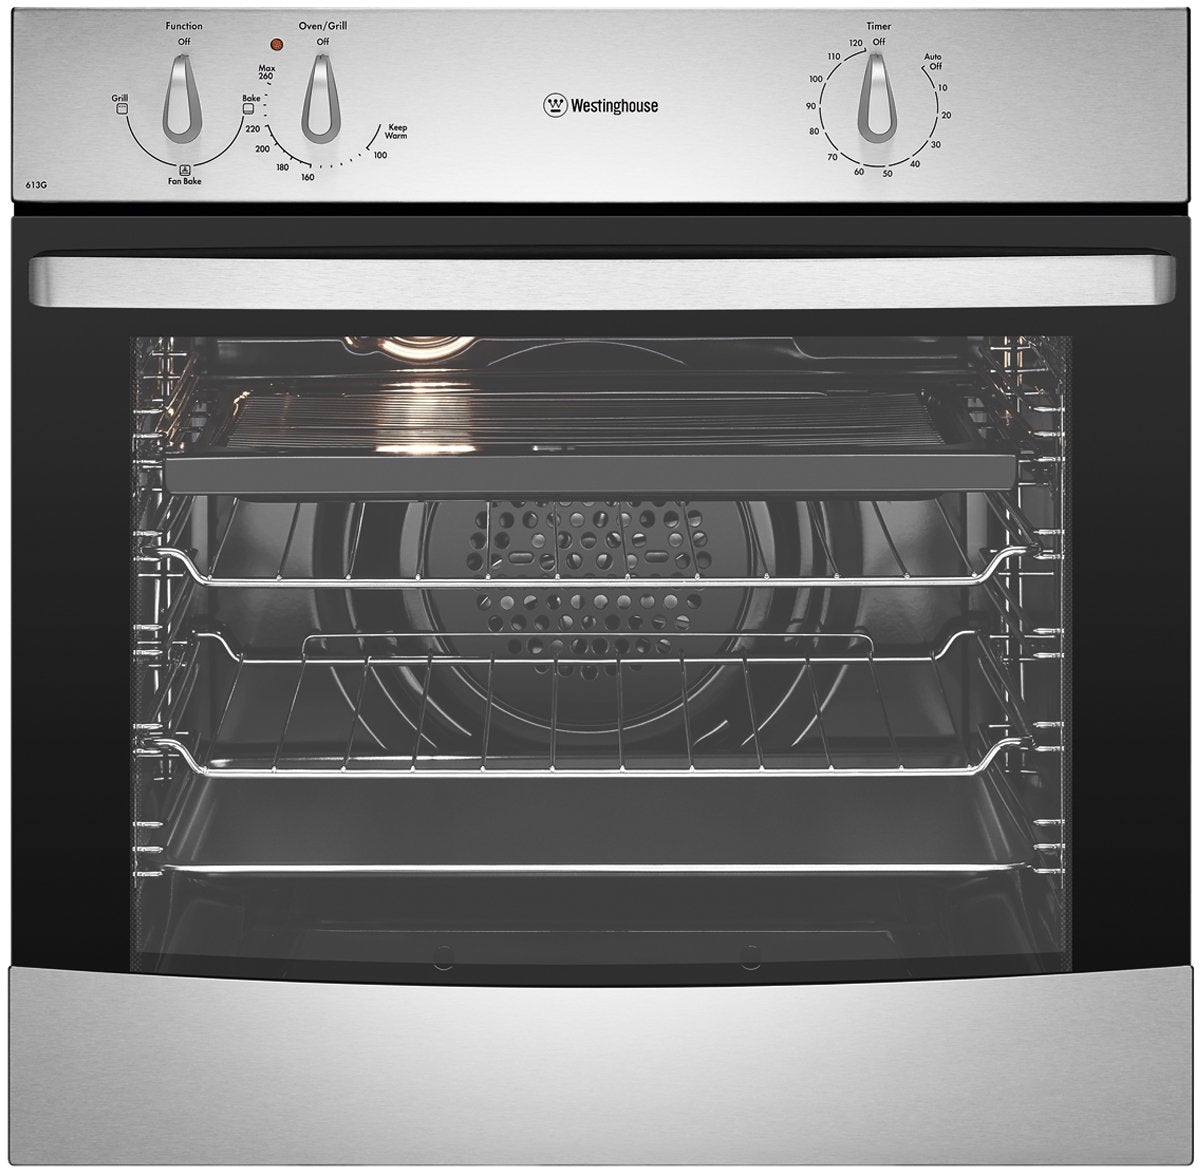 Westinghouse WVG613S 60cm Stainless Steel LP Wall Oven